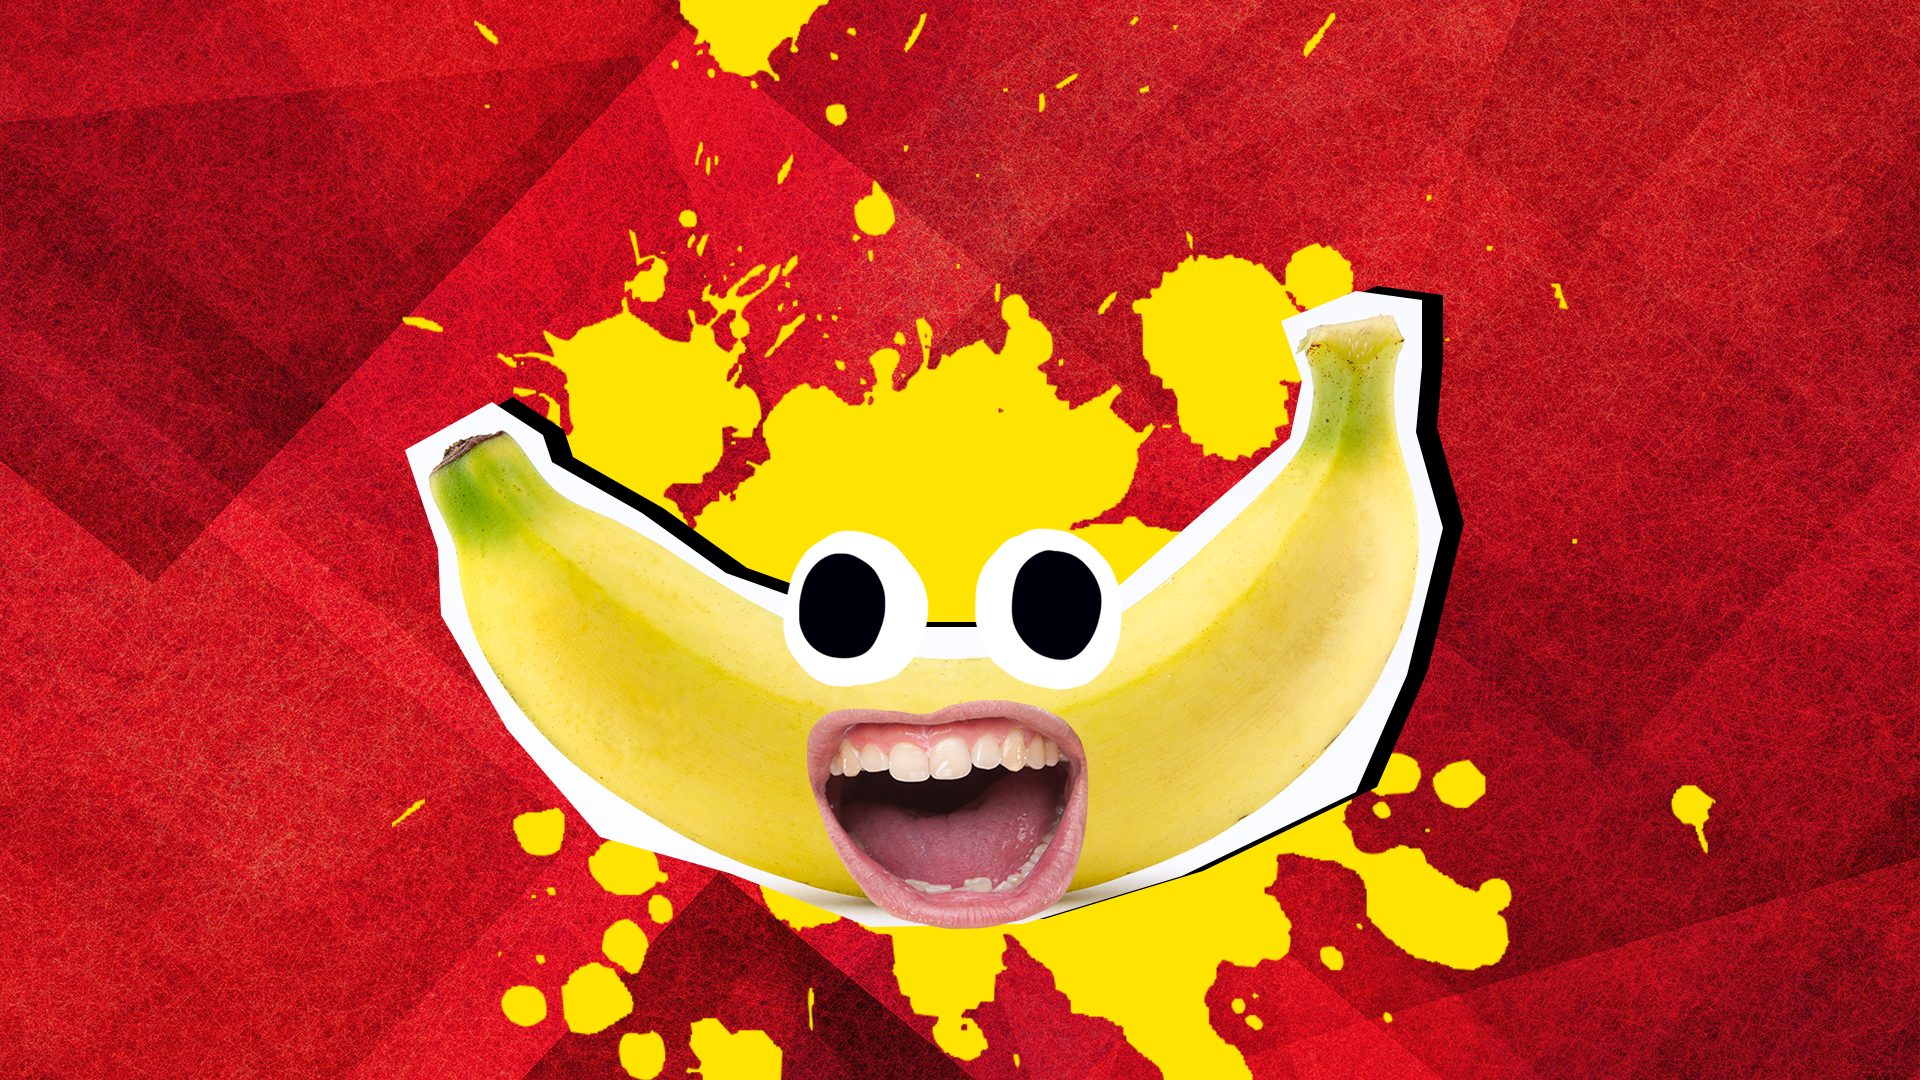 An excited looking banana in front of a red background